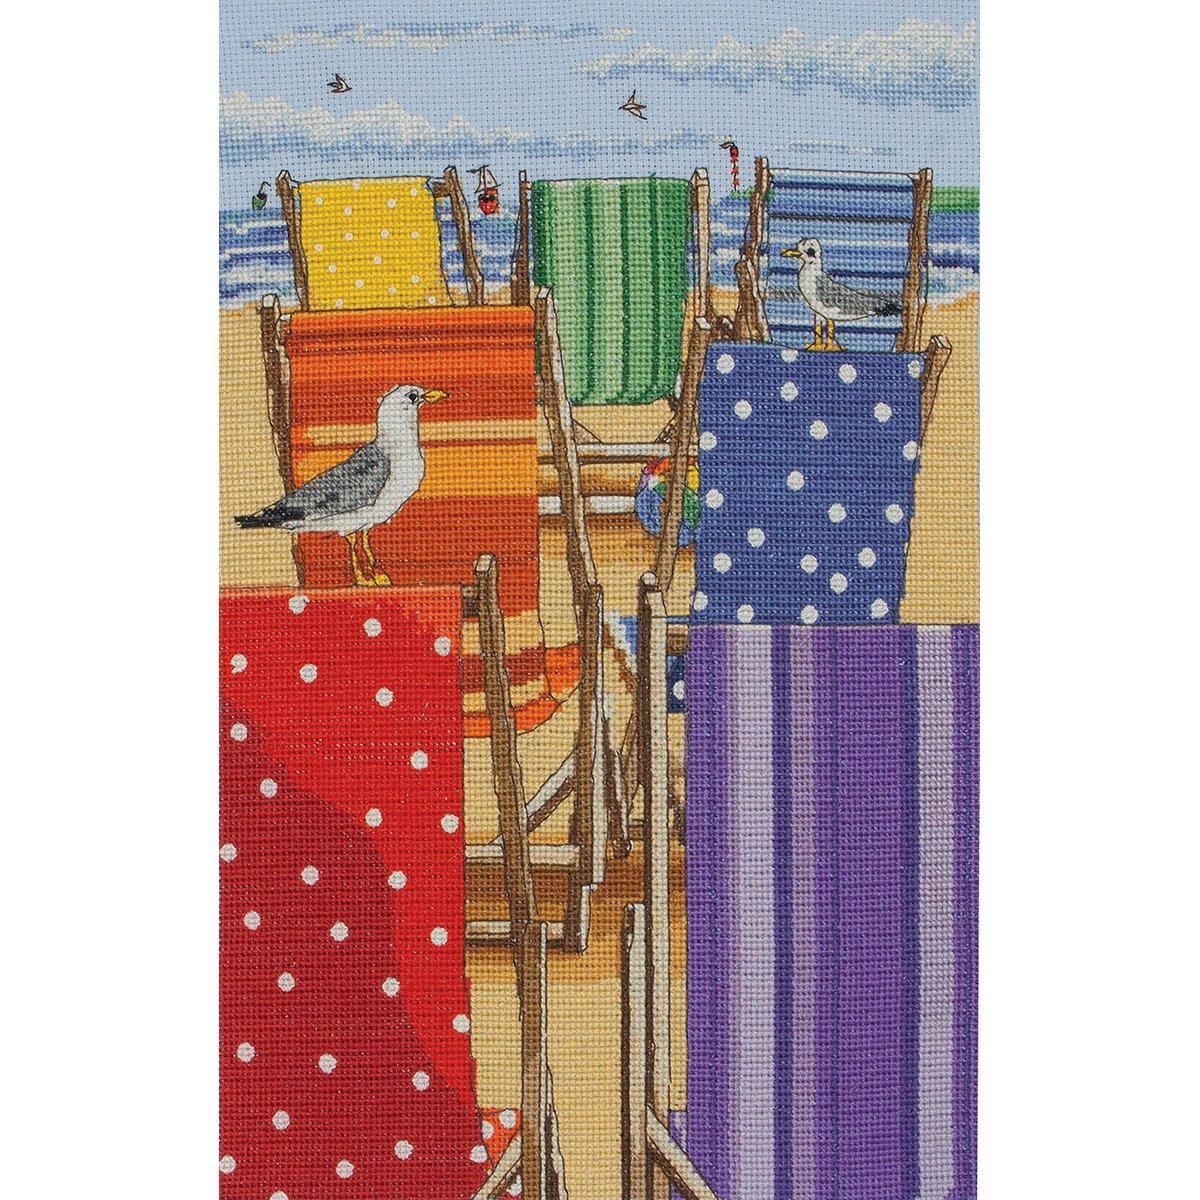 Rainbow Deck Chairs Counted Cross Stitch Kit-11.8x7.9 16 Count